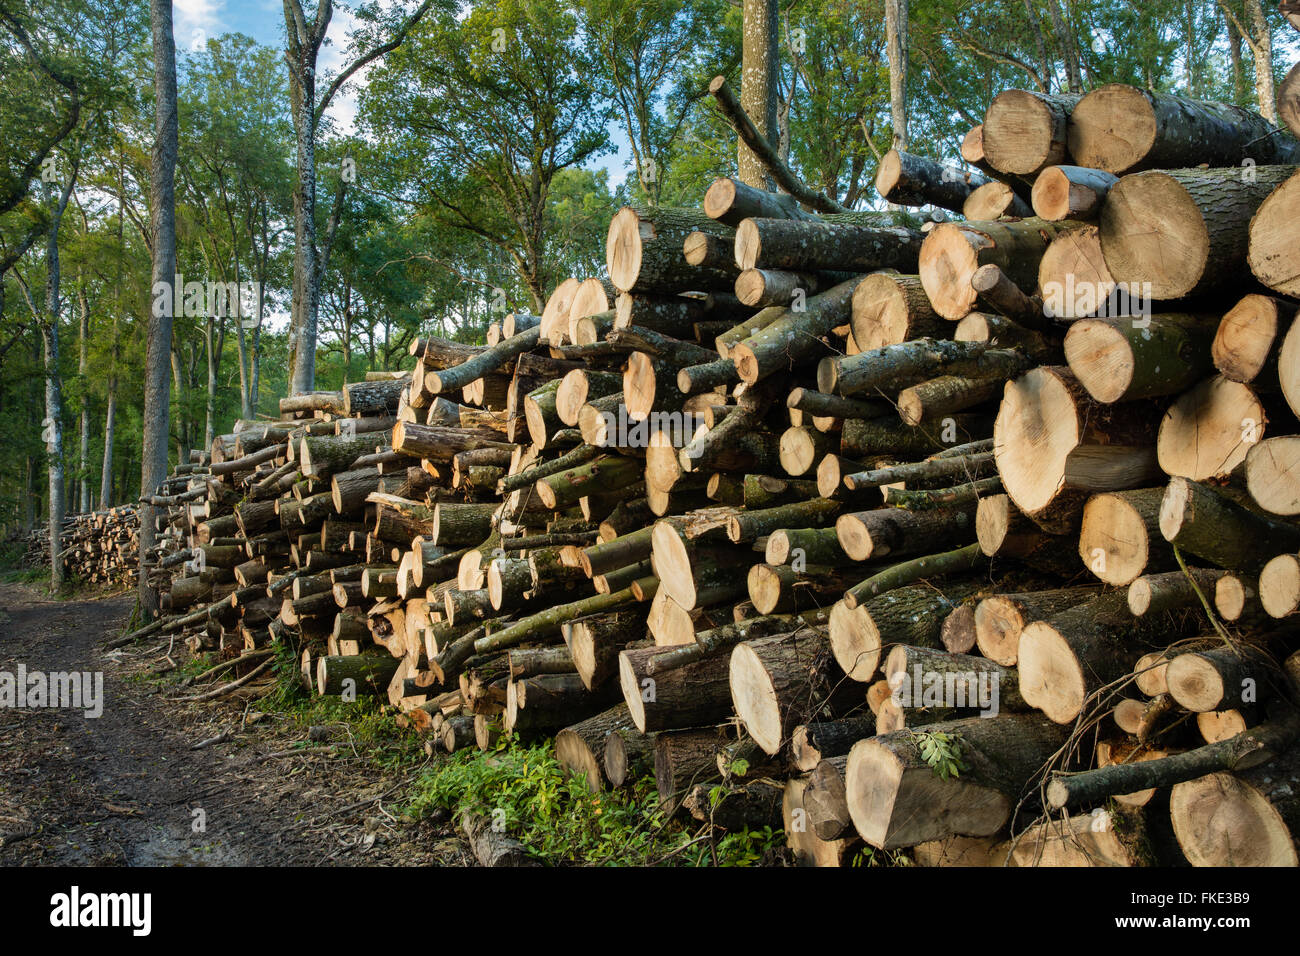 logs stacked in the woods, Milborne Wick, Somerset, England, UK - Stock Image